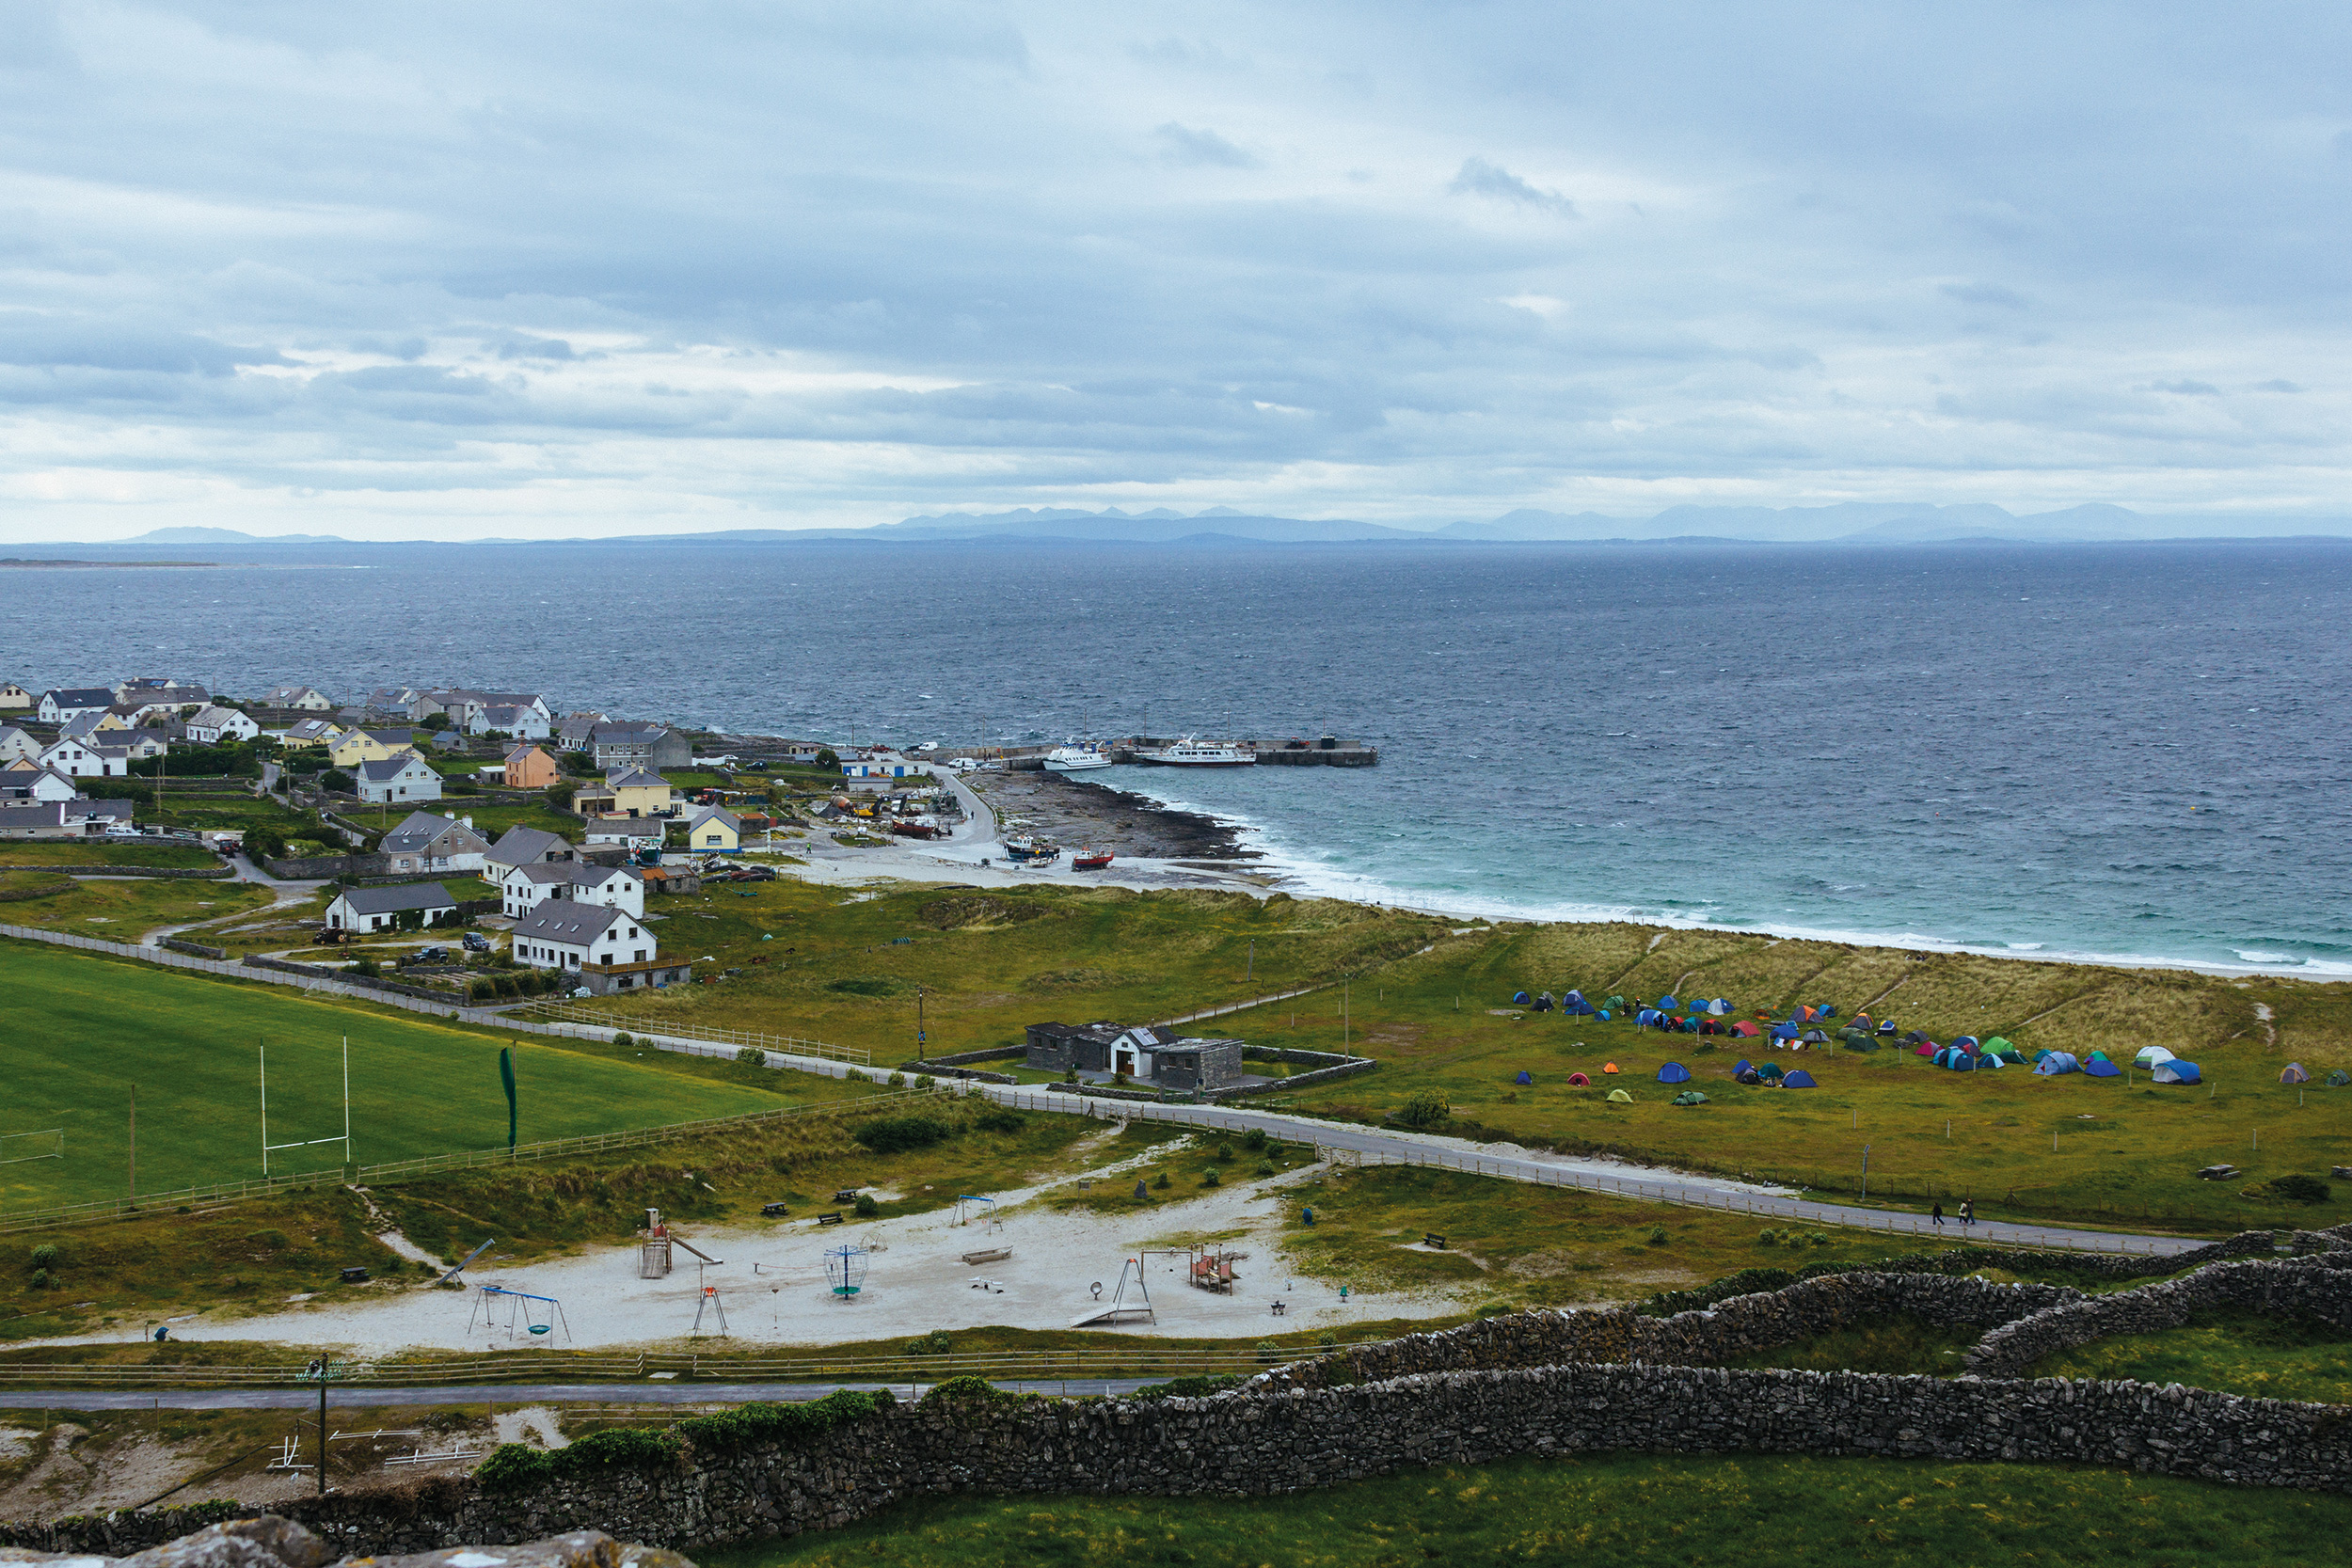 Photograph of Inis Oírr during DE14 by Conal Thomson